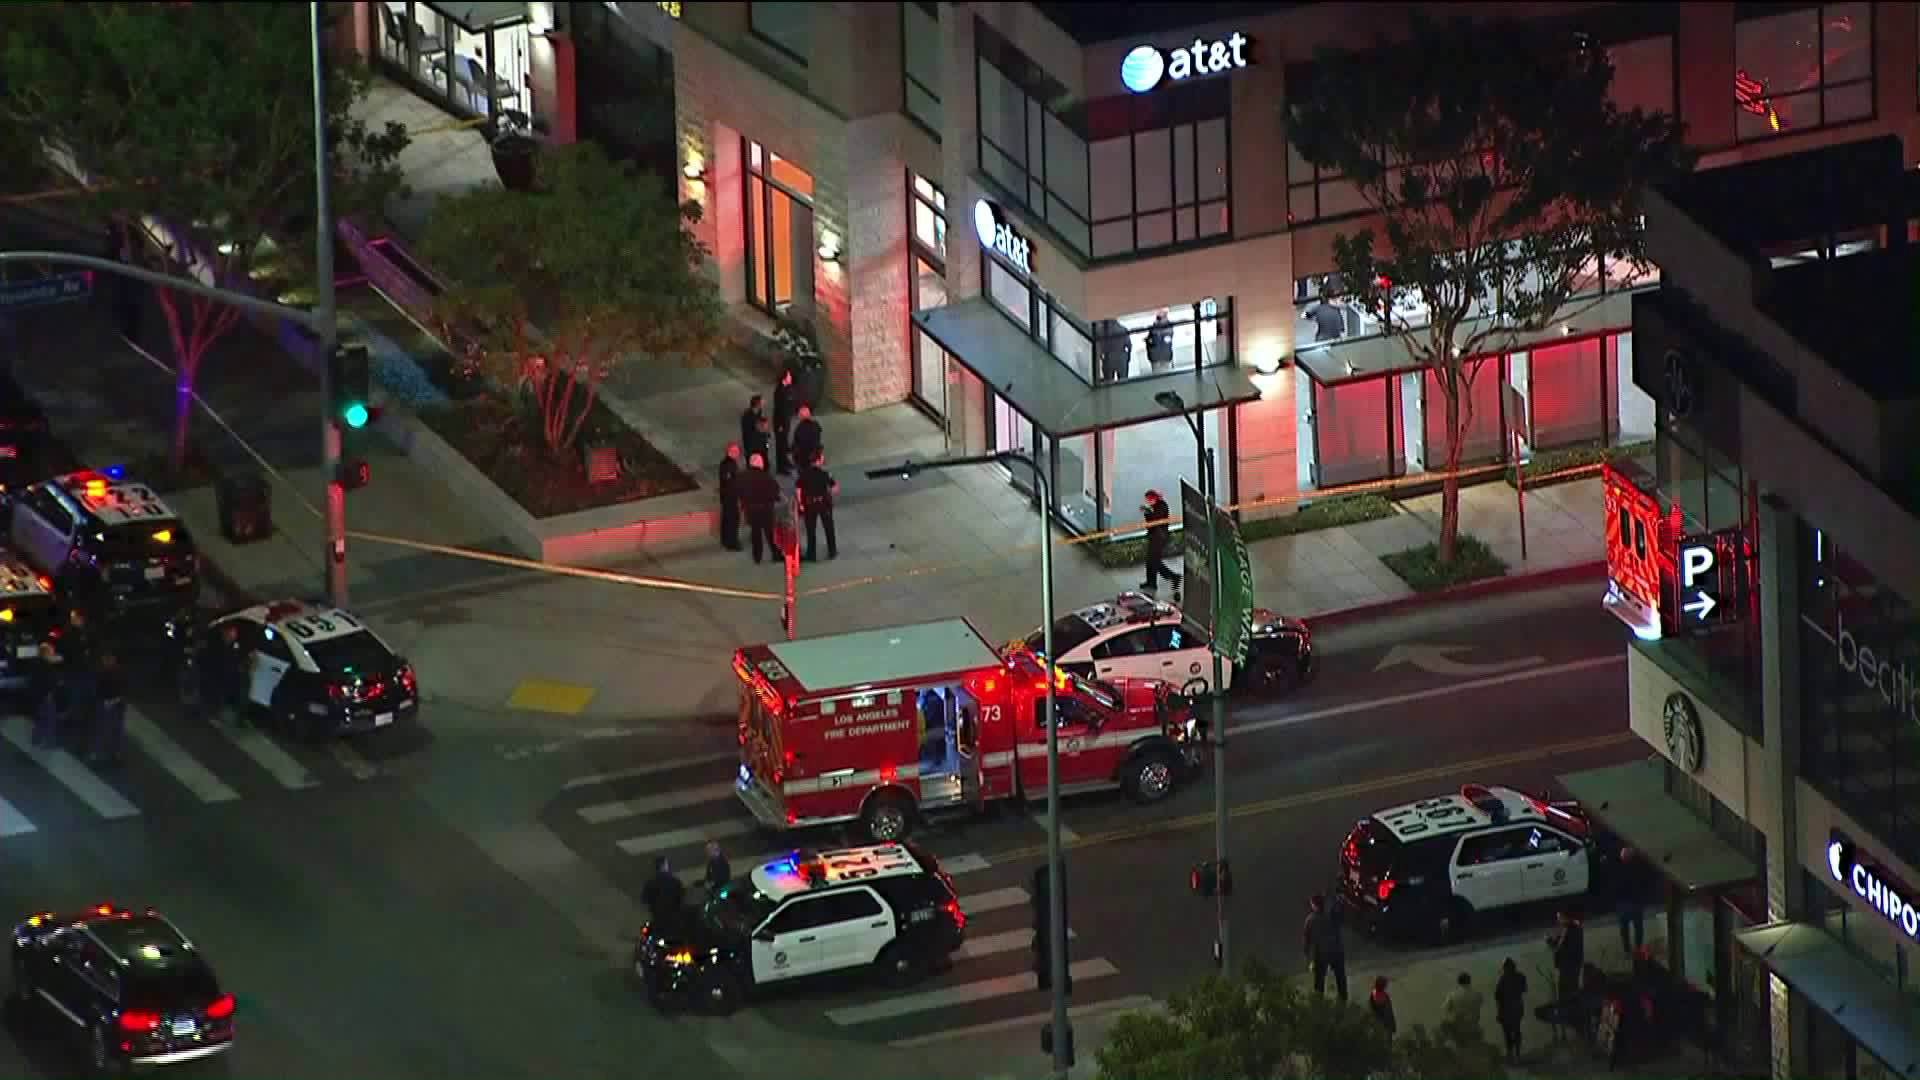 Paramedics and police respond to an officer needs help call at an AT&t Store in Tarzana on Feb. 19, 2018. (Credit: KTLA)